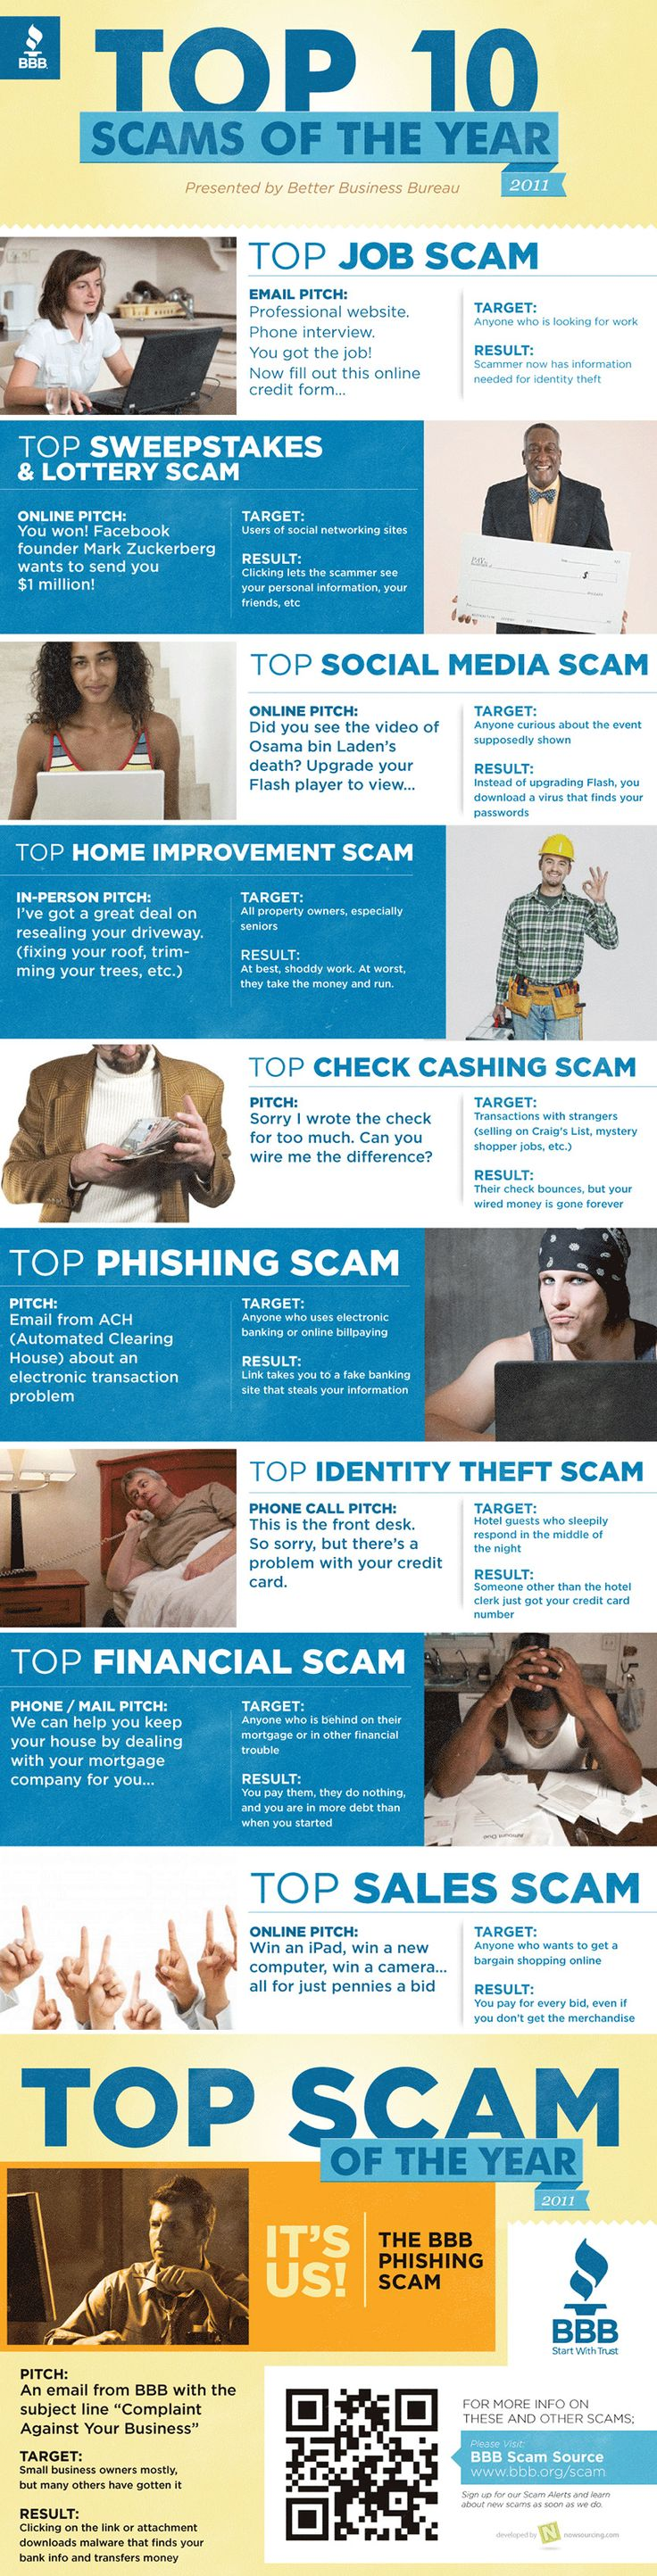 Beware: Top 10 Scams of the Year